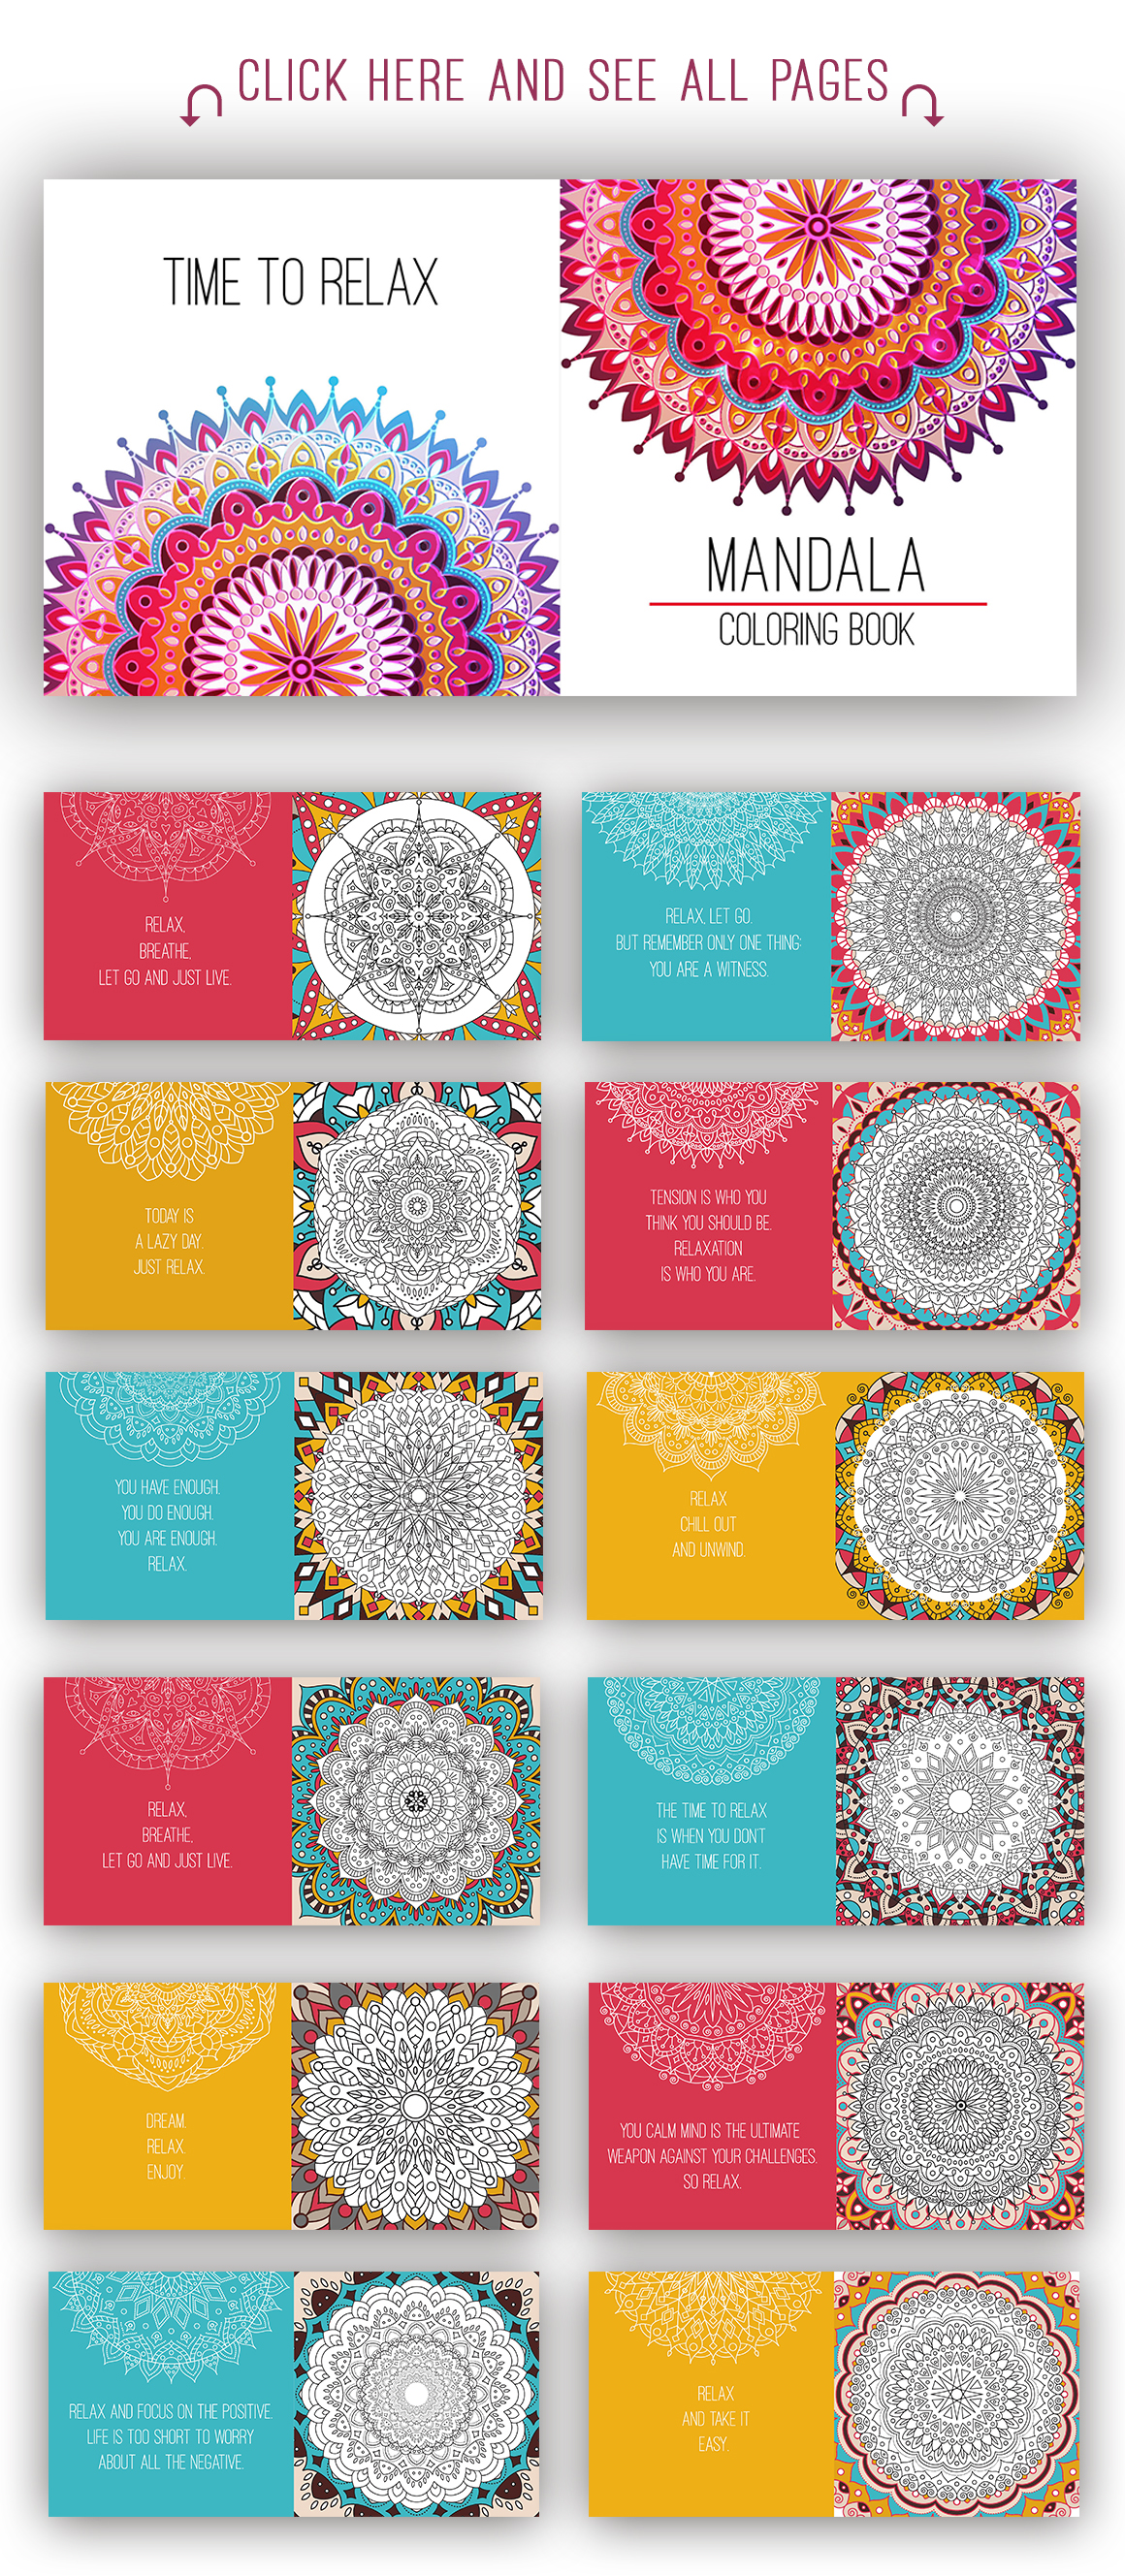 Mandala coloring book for adults.